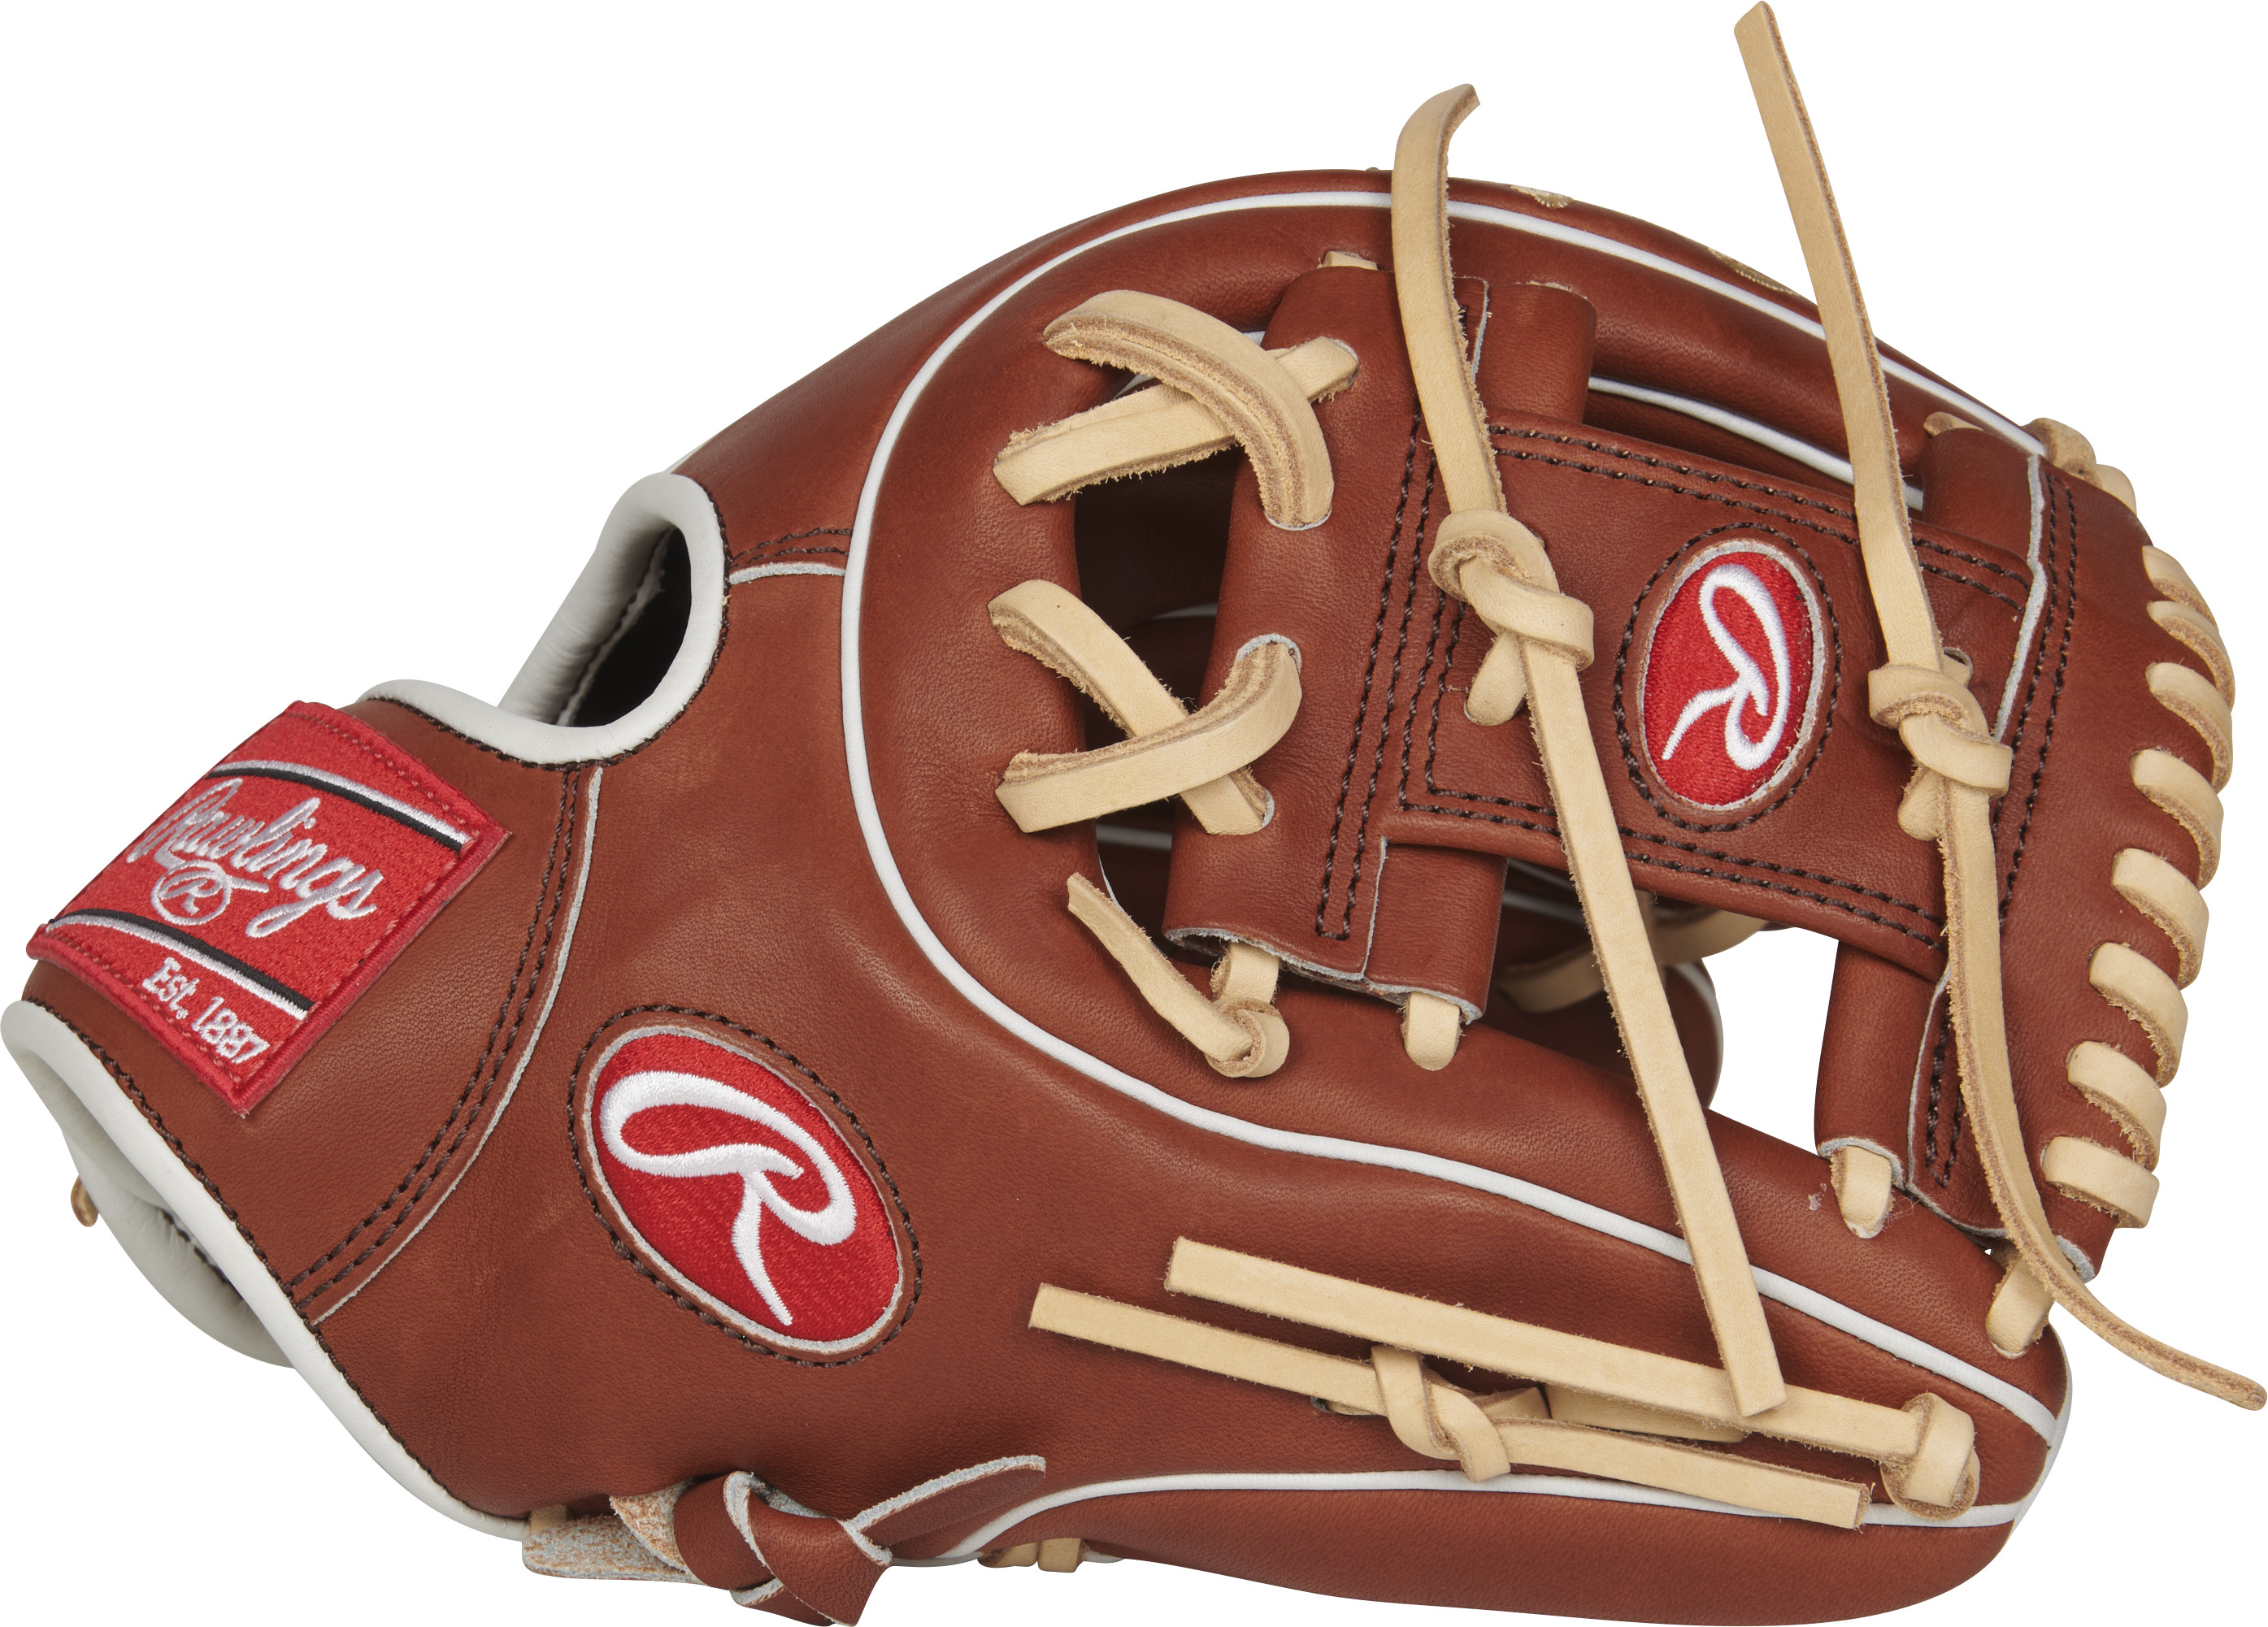 http://www.bestbatdeals.com/images/gloves/rawlings/PROS314-2BR-3.jpg